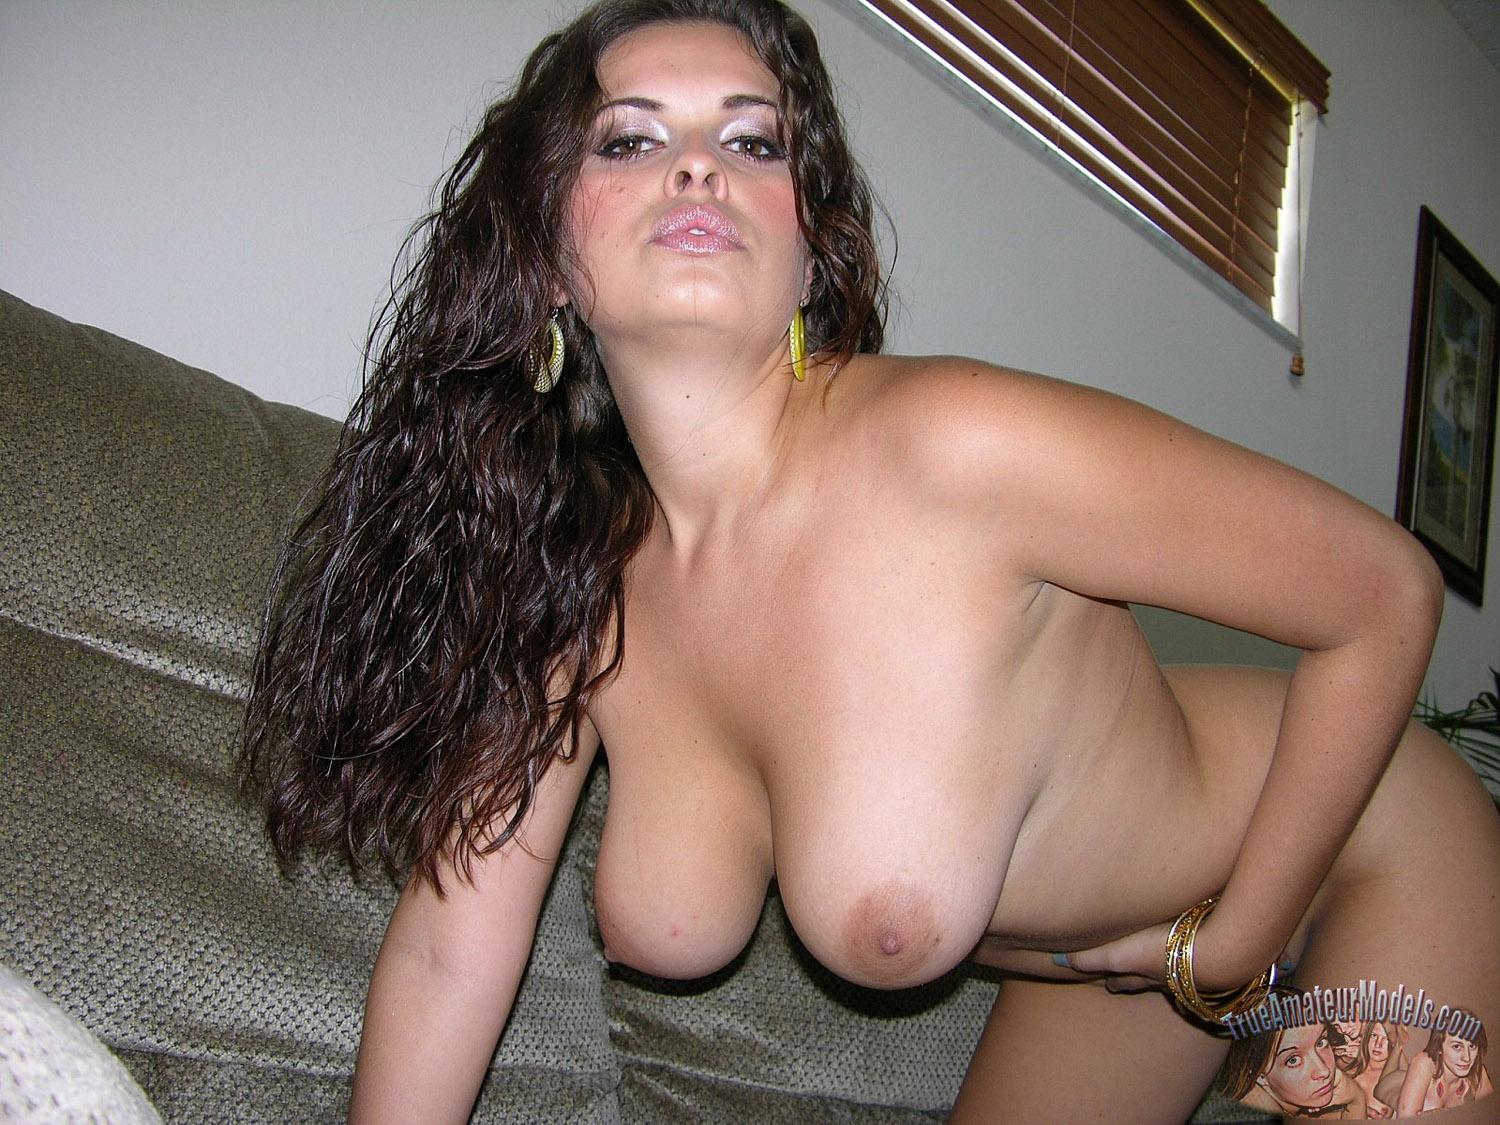 Return Bbw native american nude know